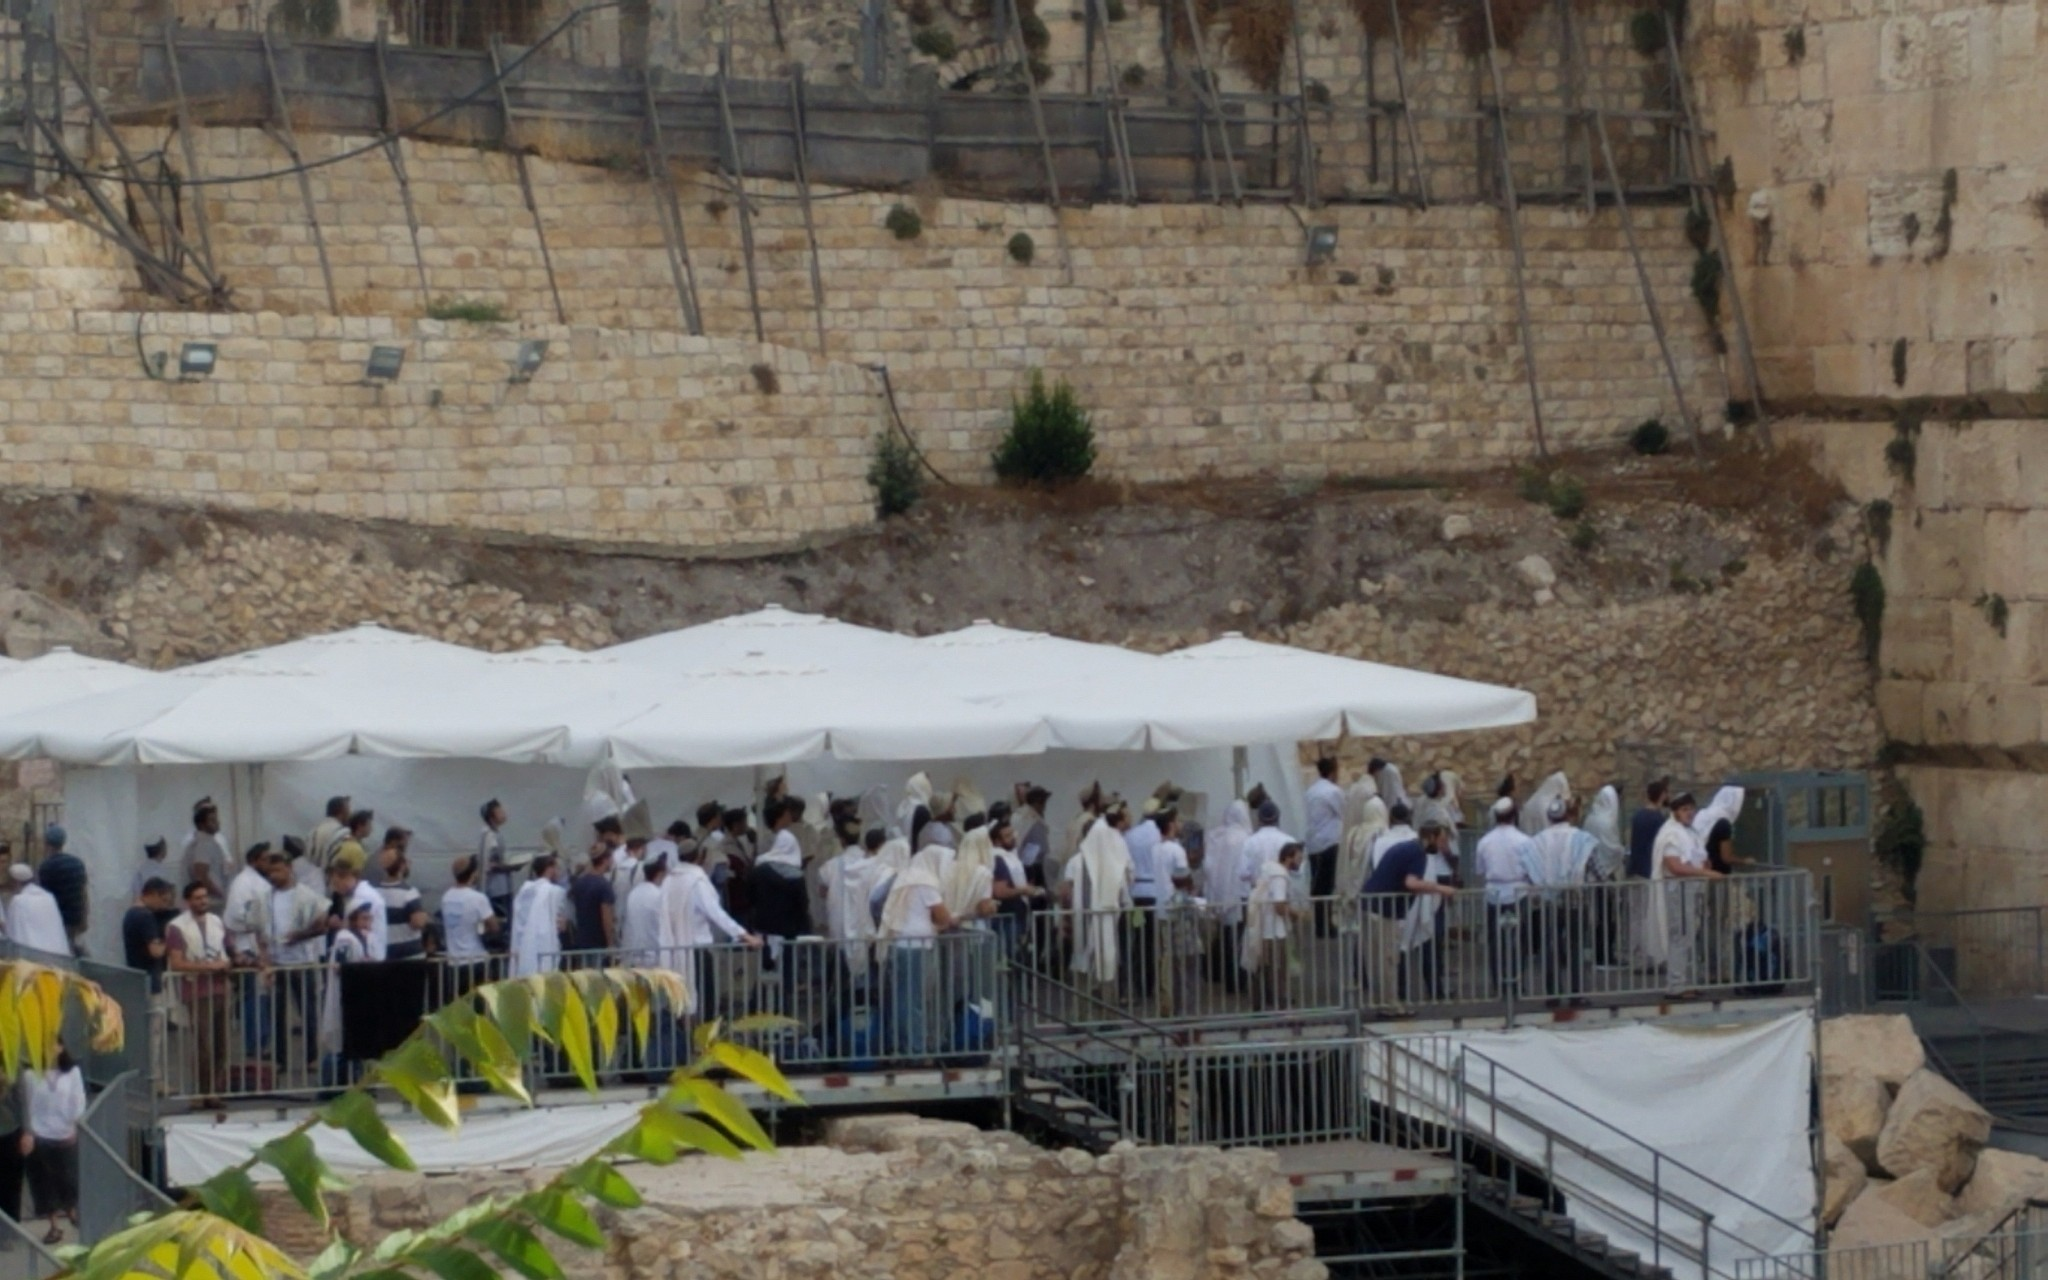 Western Wall egalitarian area used daily for gender-segregated